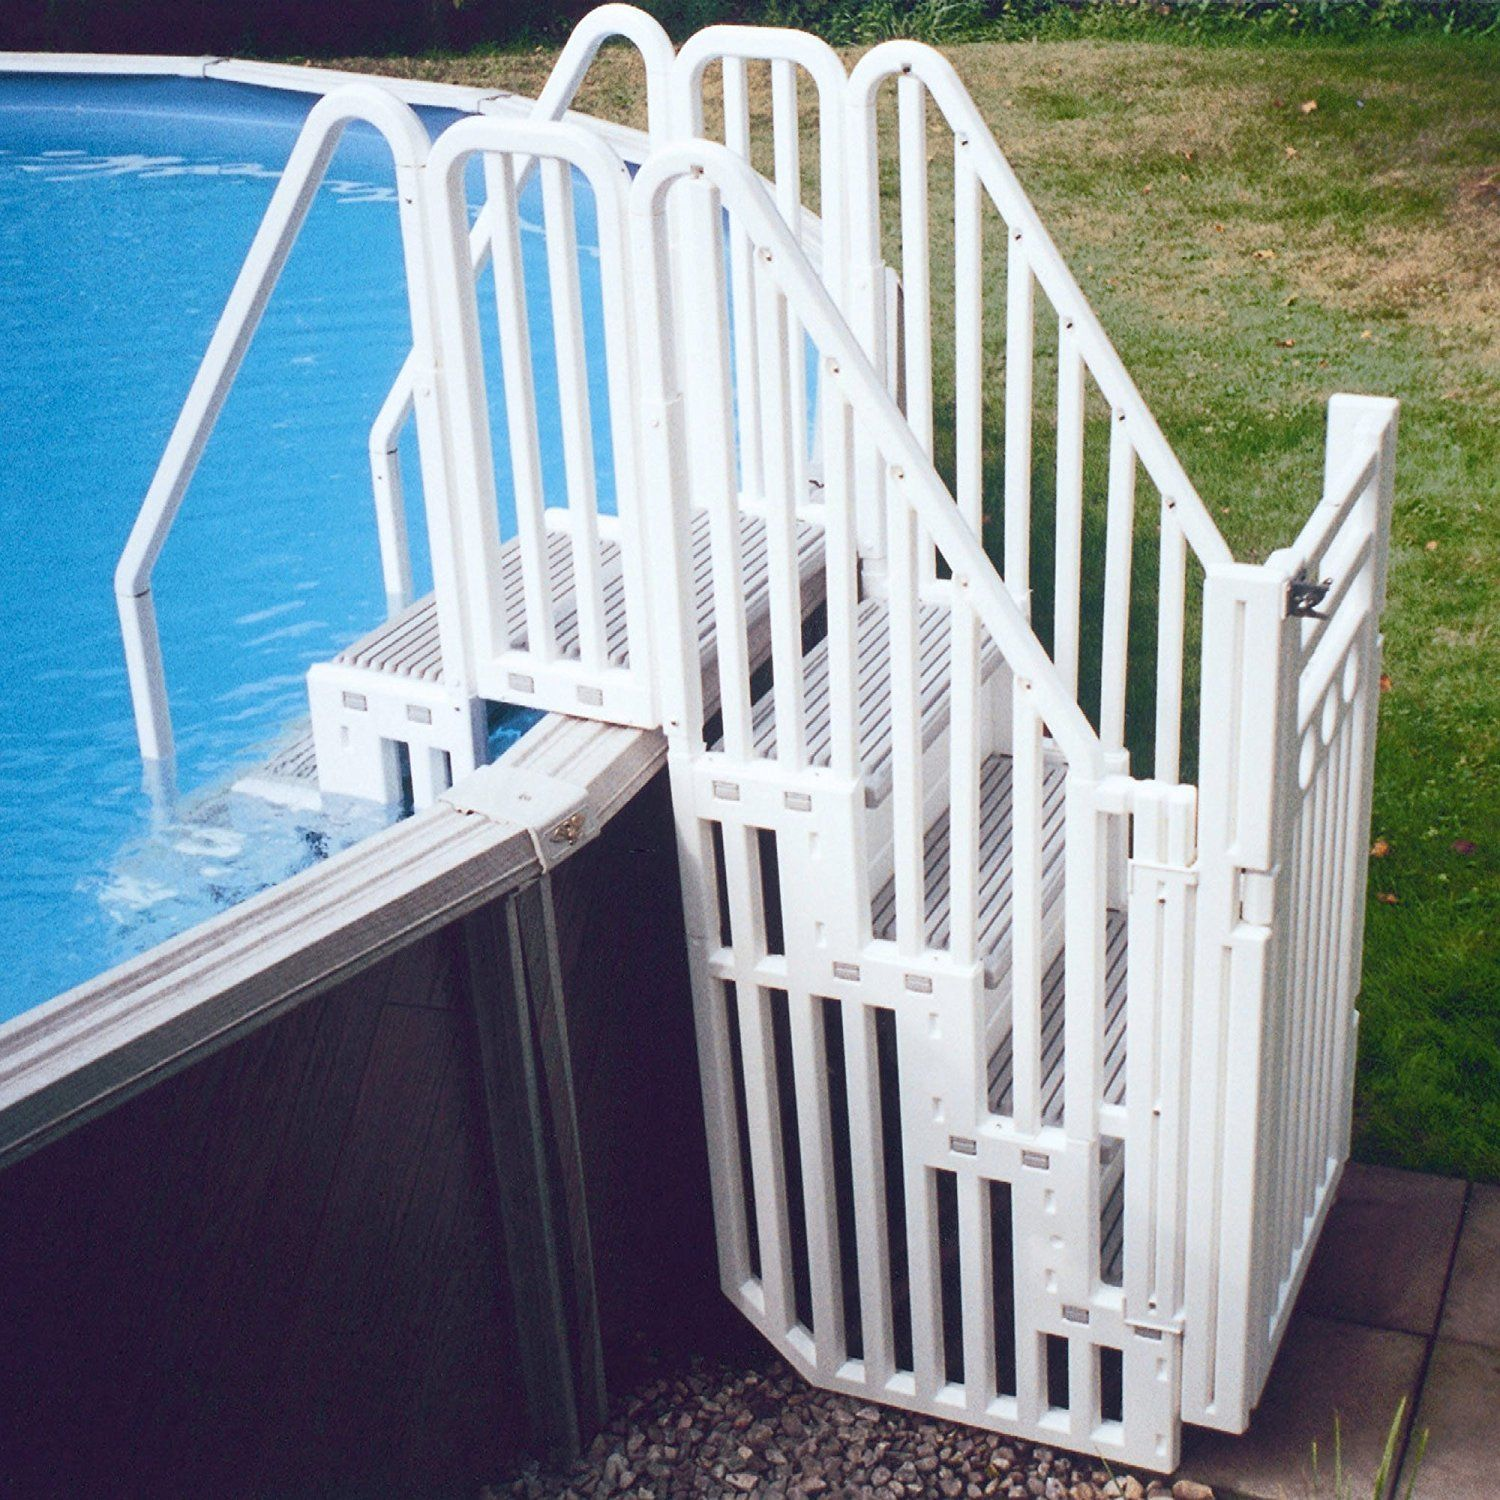 best 25 above ground pool steps ideas on pinterest deck with above ground pool above ground pool decks and above ground pool stairs - Above Ground Pool Steps